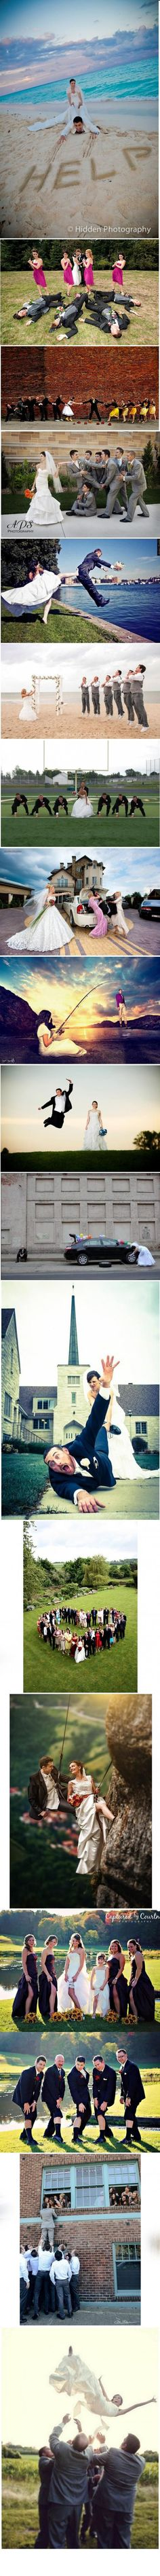 Unusual and fun wedding photos I like the end pictures, the first one I don't really like for wedding pictures Please repin if you like it! Check out more of my pins: http://pinterest.com/treypeezy